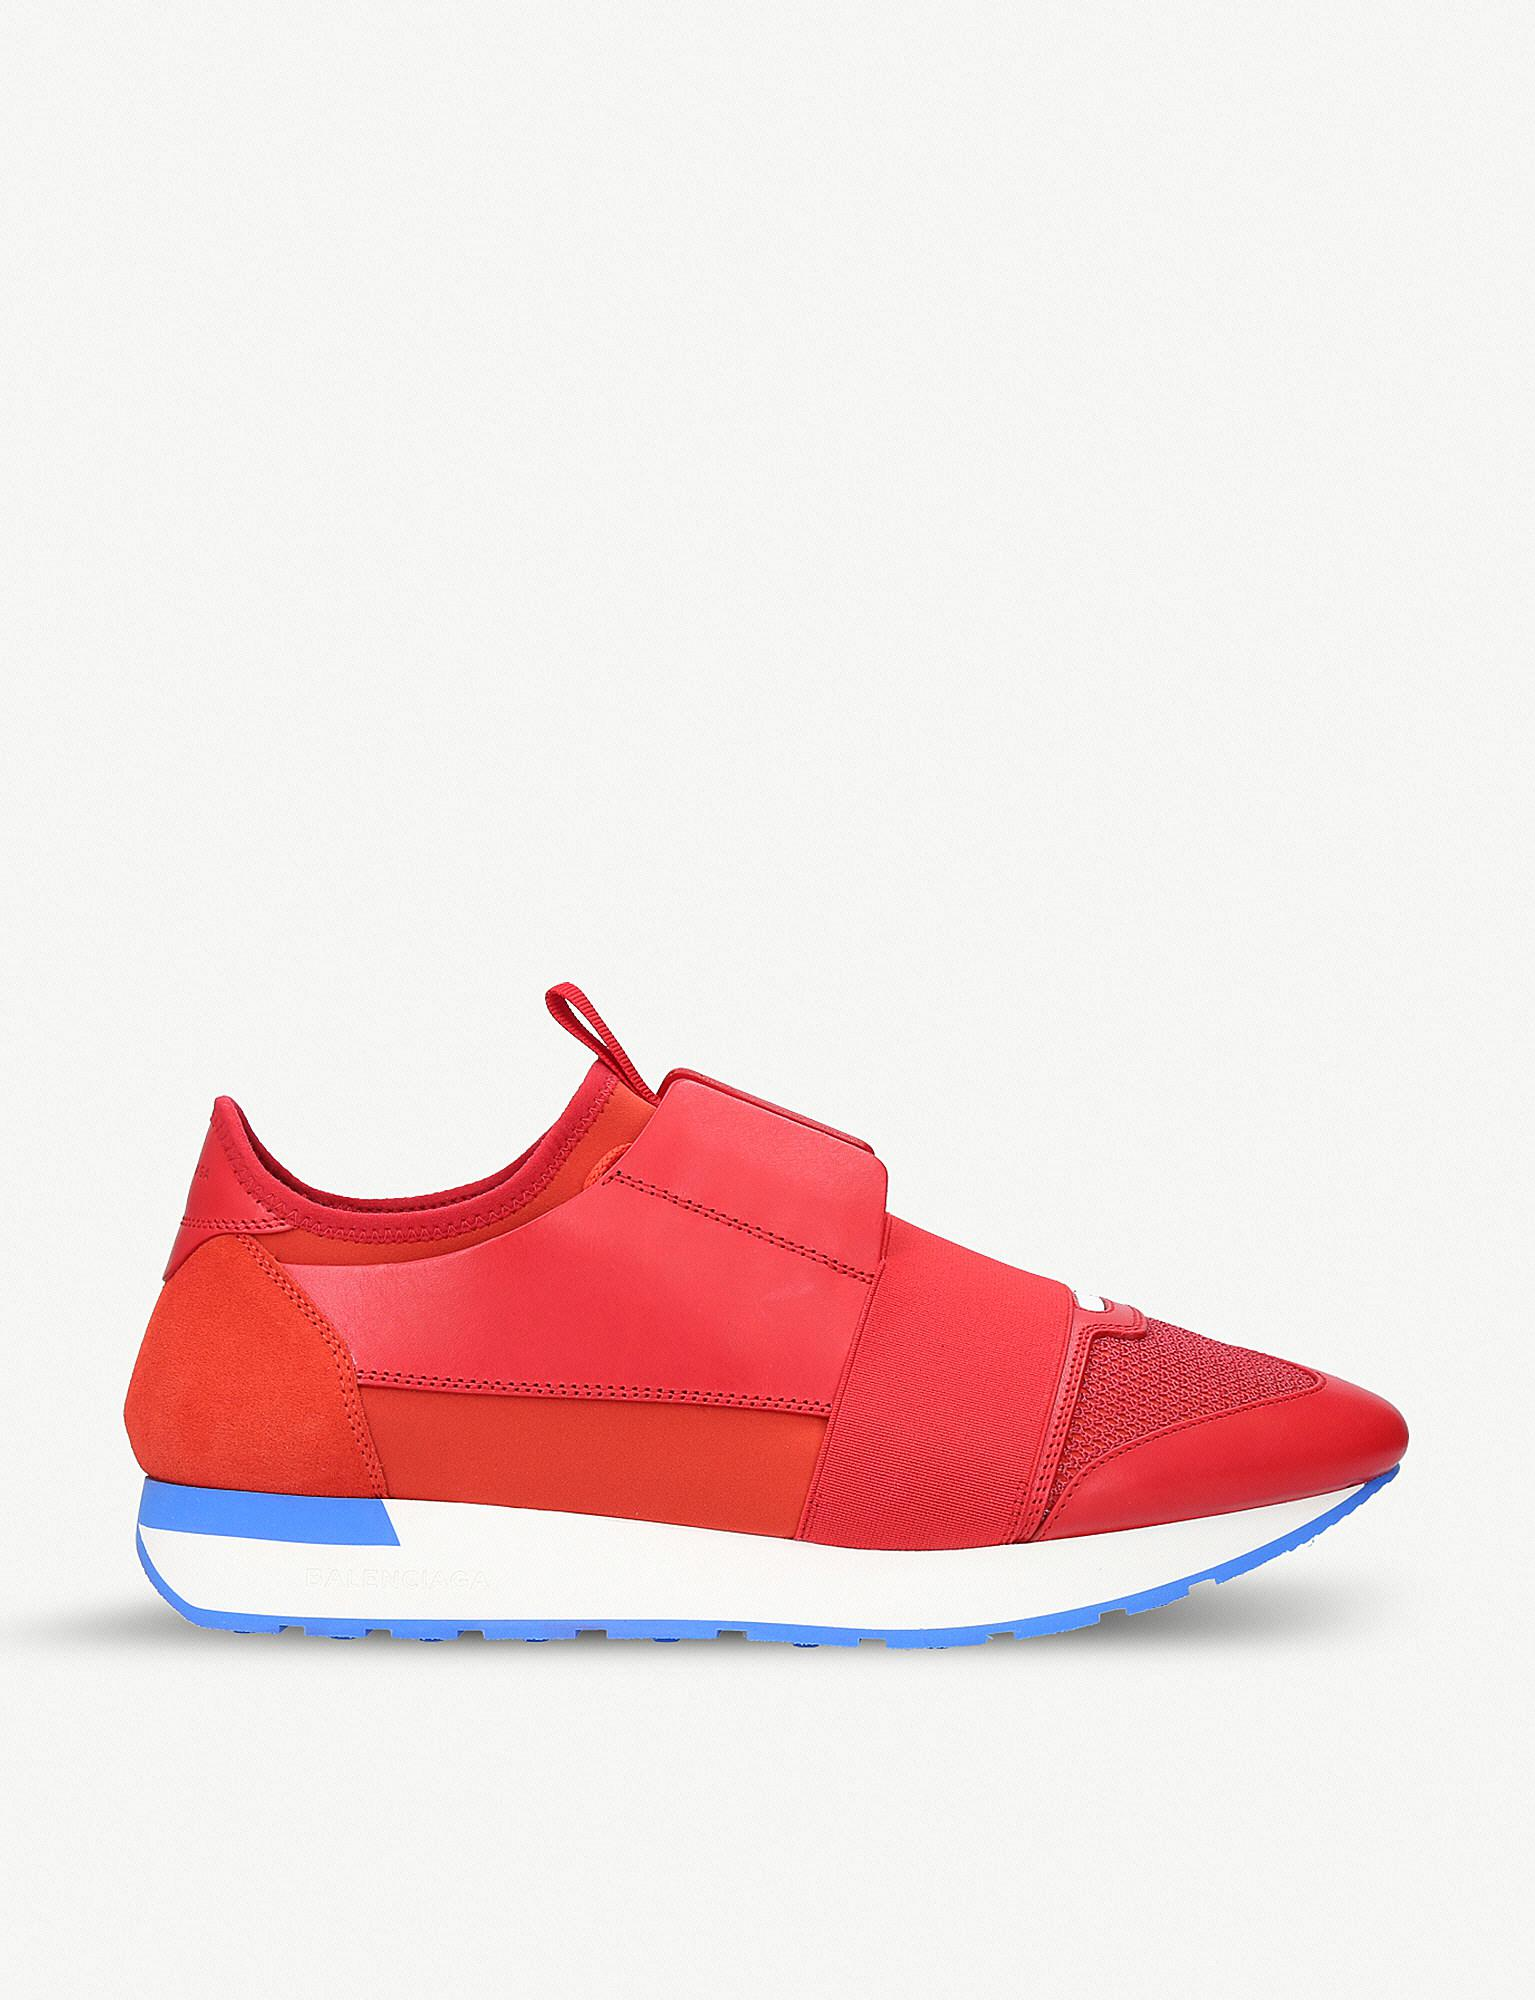 790e5db1c60e Balenciaga Panelled Race Runner Sneakers in Red for Men - Save 28 ...